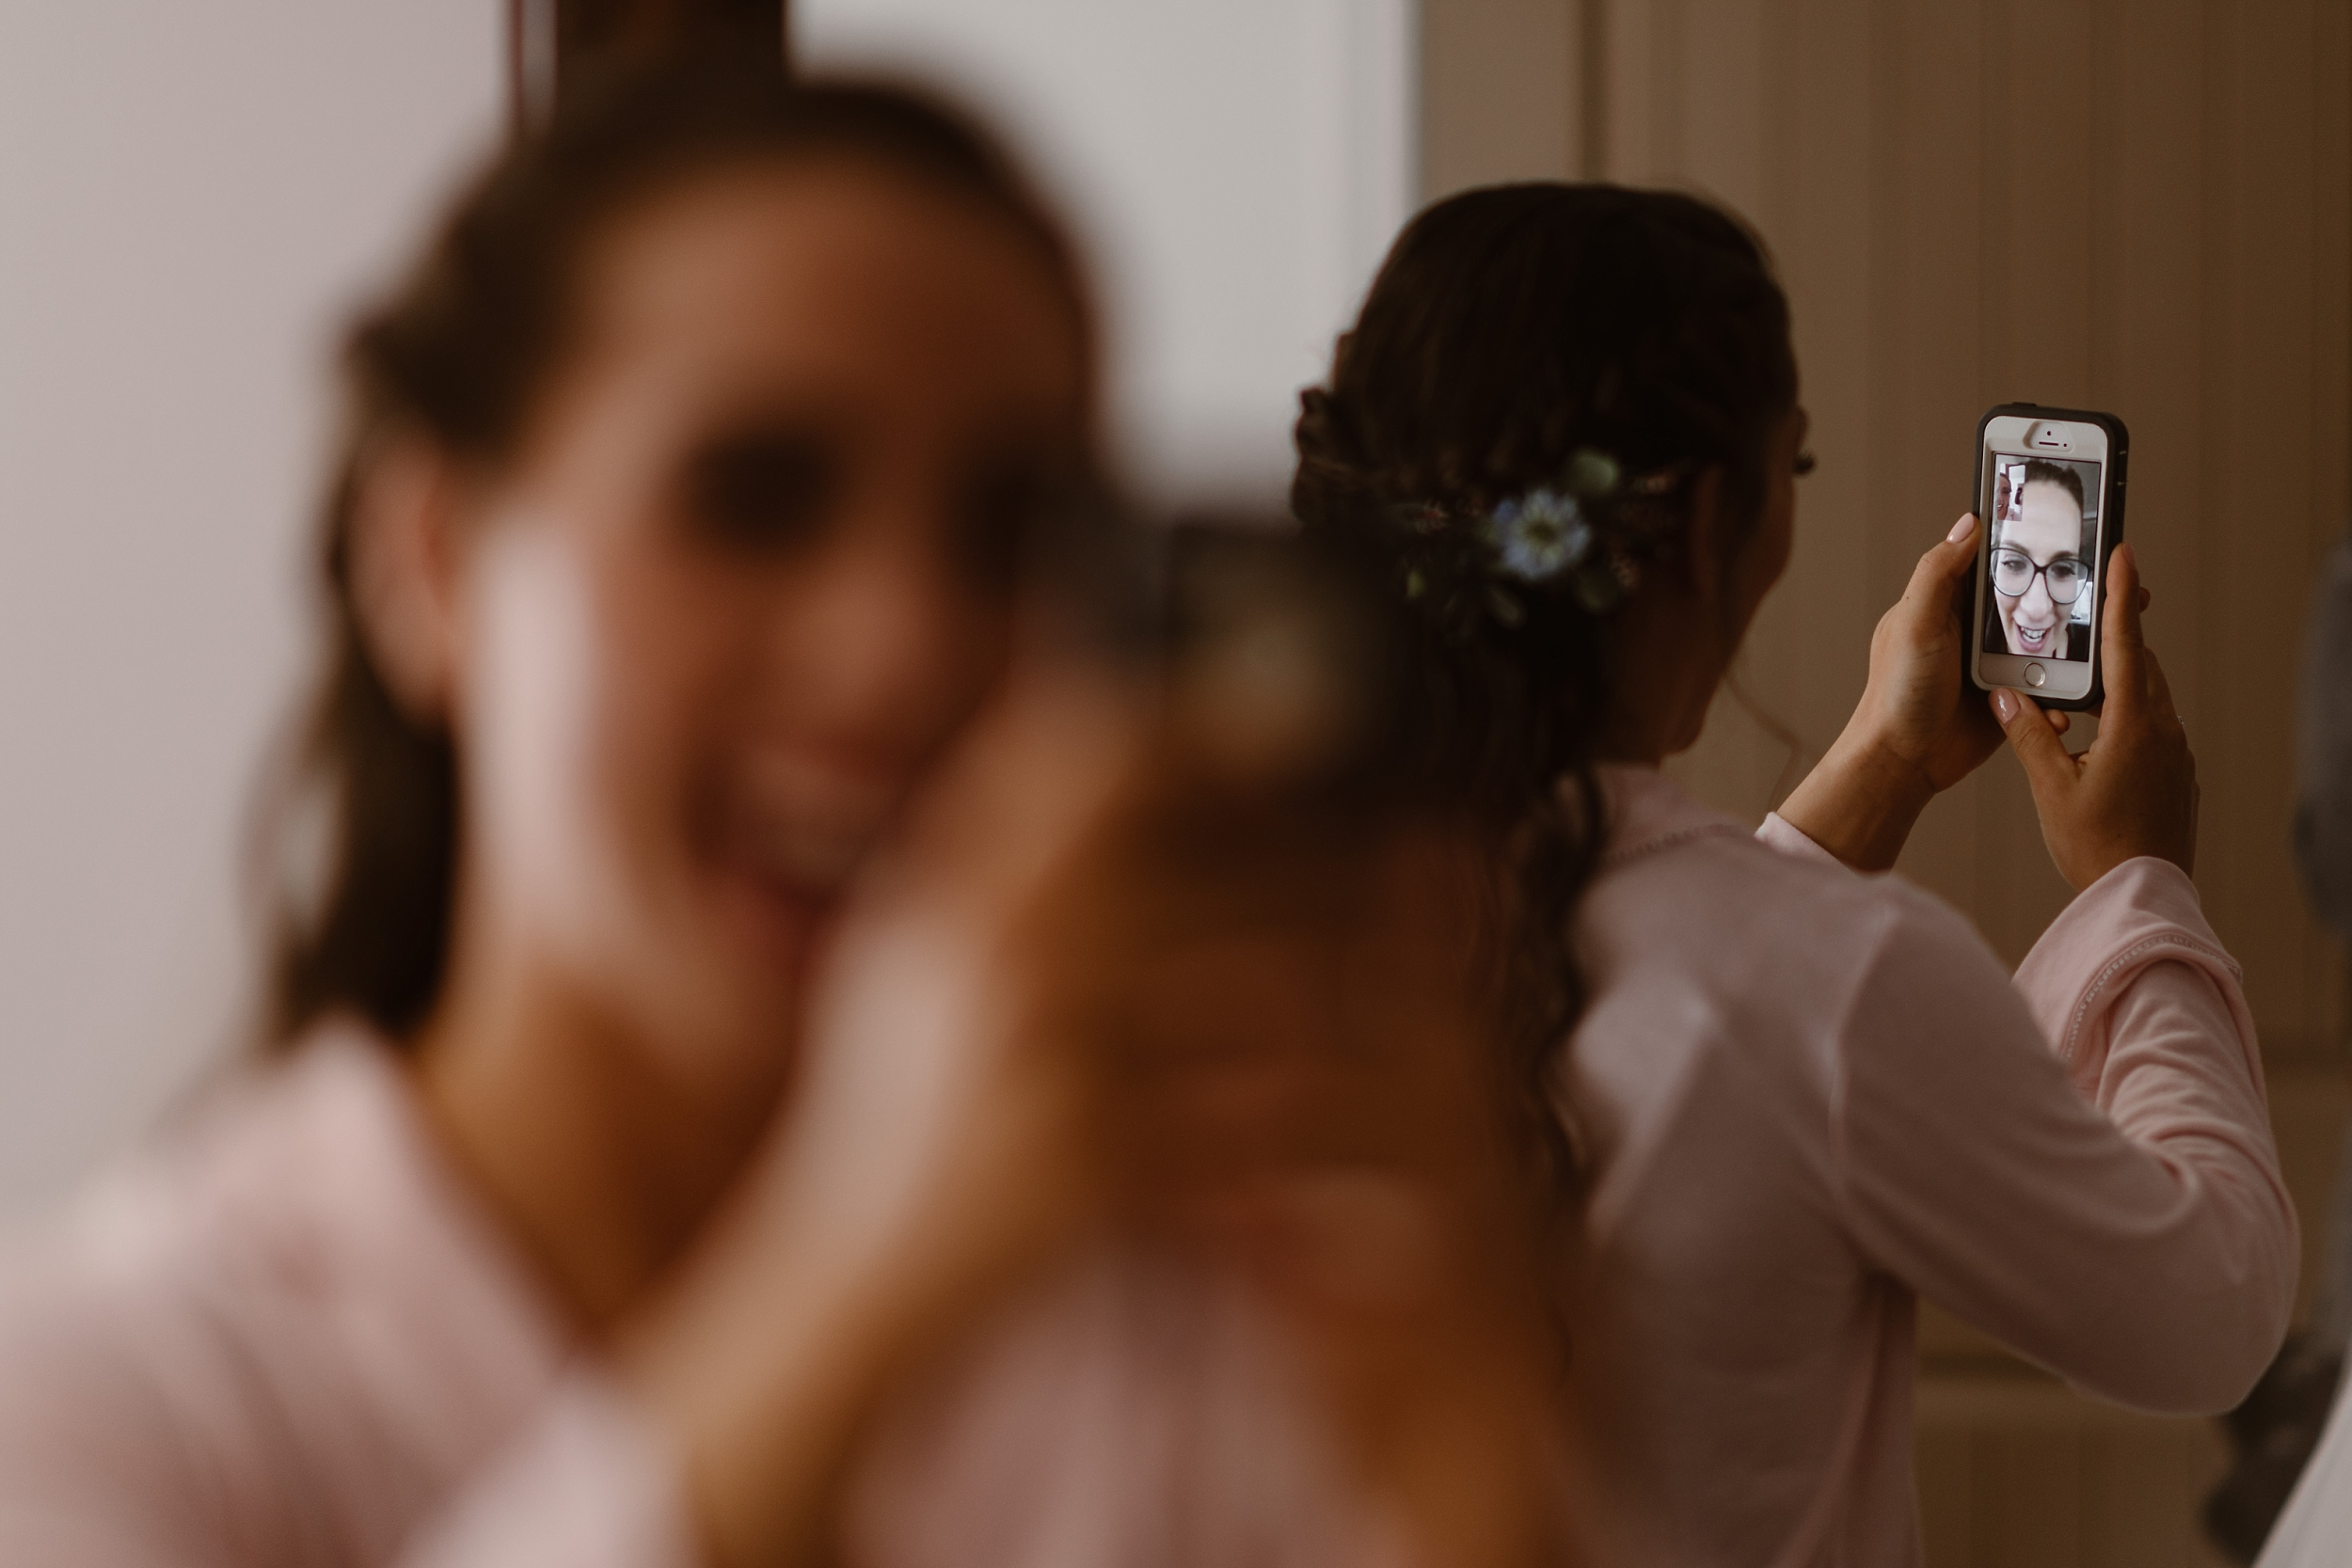 In this image, the bride factimes a loved one in the mirror while she's getting ready for her destination elopement in Alaska. In this image taken by elopement photographer Adventure Instead, the brides face is blurred, but her loved one and the back of her hair are in focus